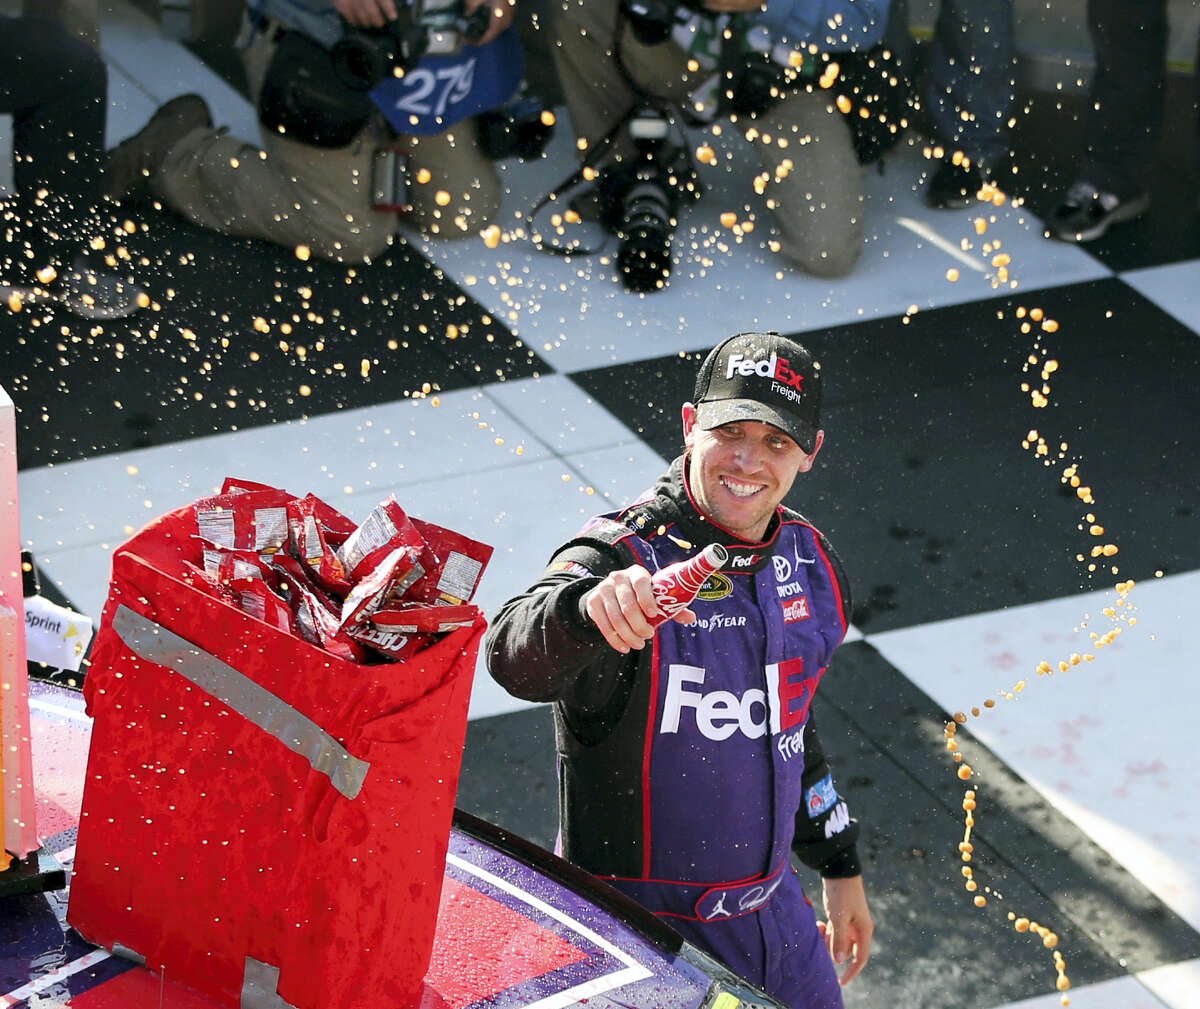 Denny Hamlin (11) celebrates in victory lane after winning this past Sunday.